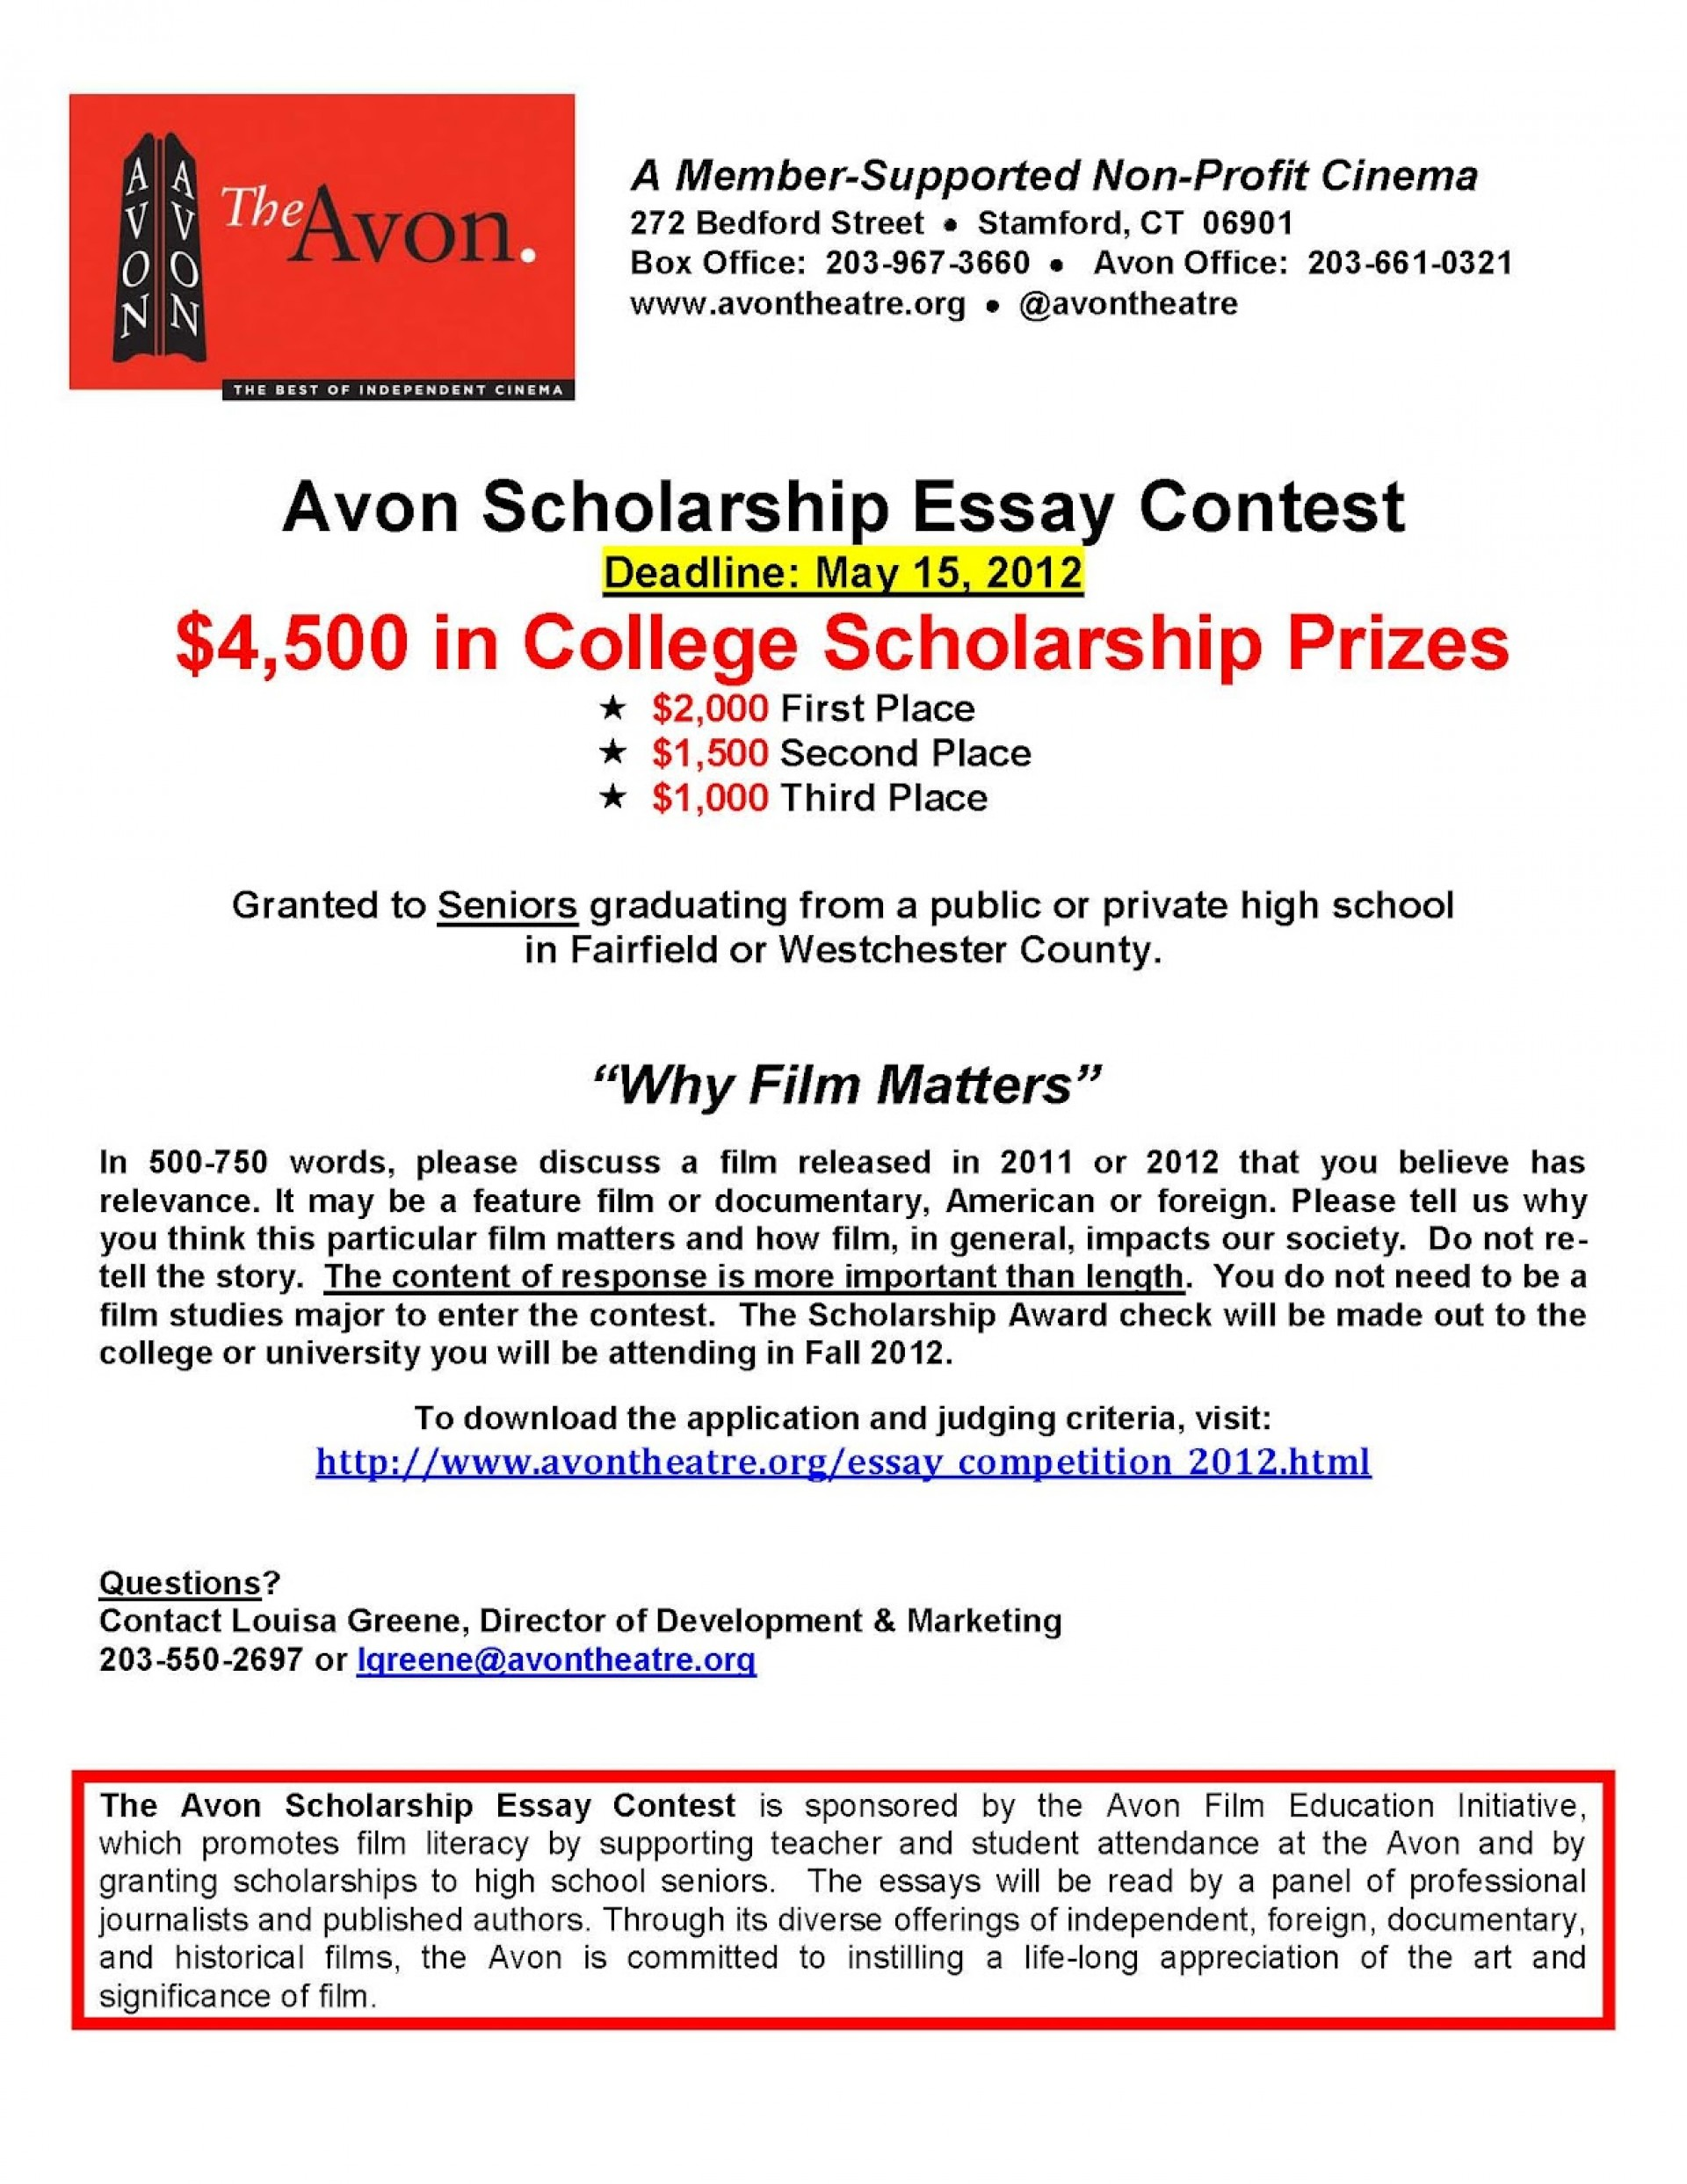 002 Scholarships No Essay College Scholarship Prowler Free For High School Seniors Avonscholarshipessaycontest2012 In Texas California Class Of Short Best 2019 2017 1920